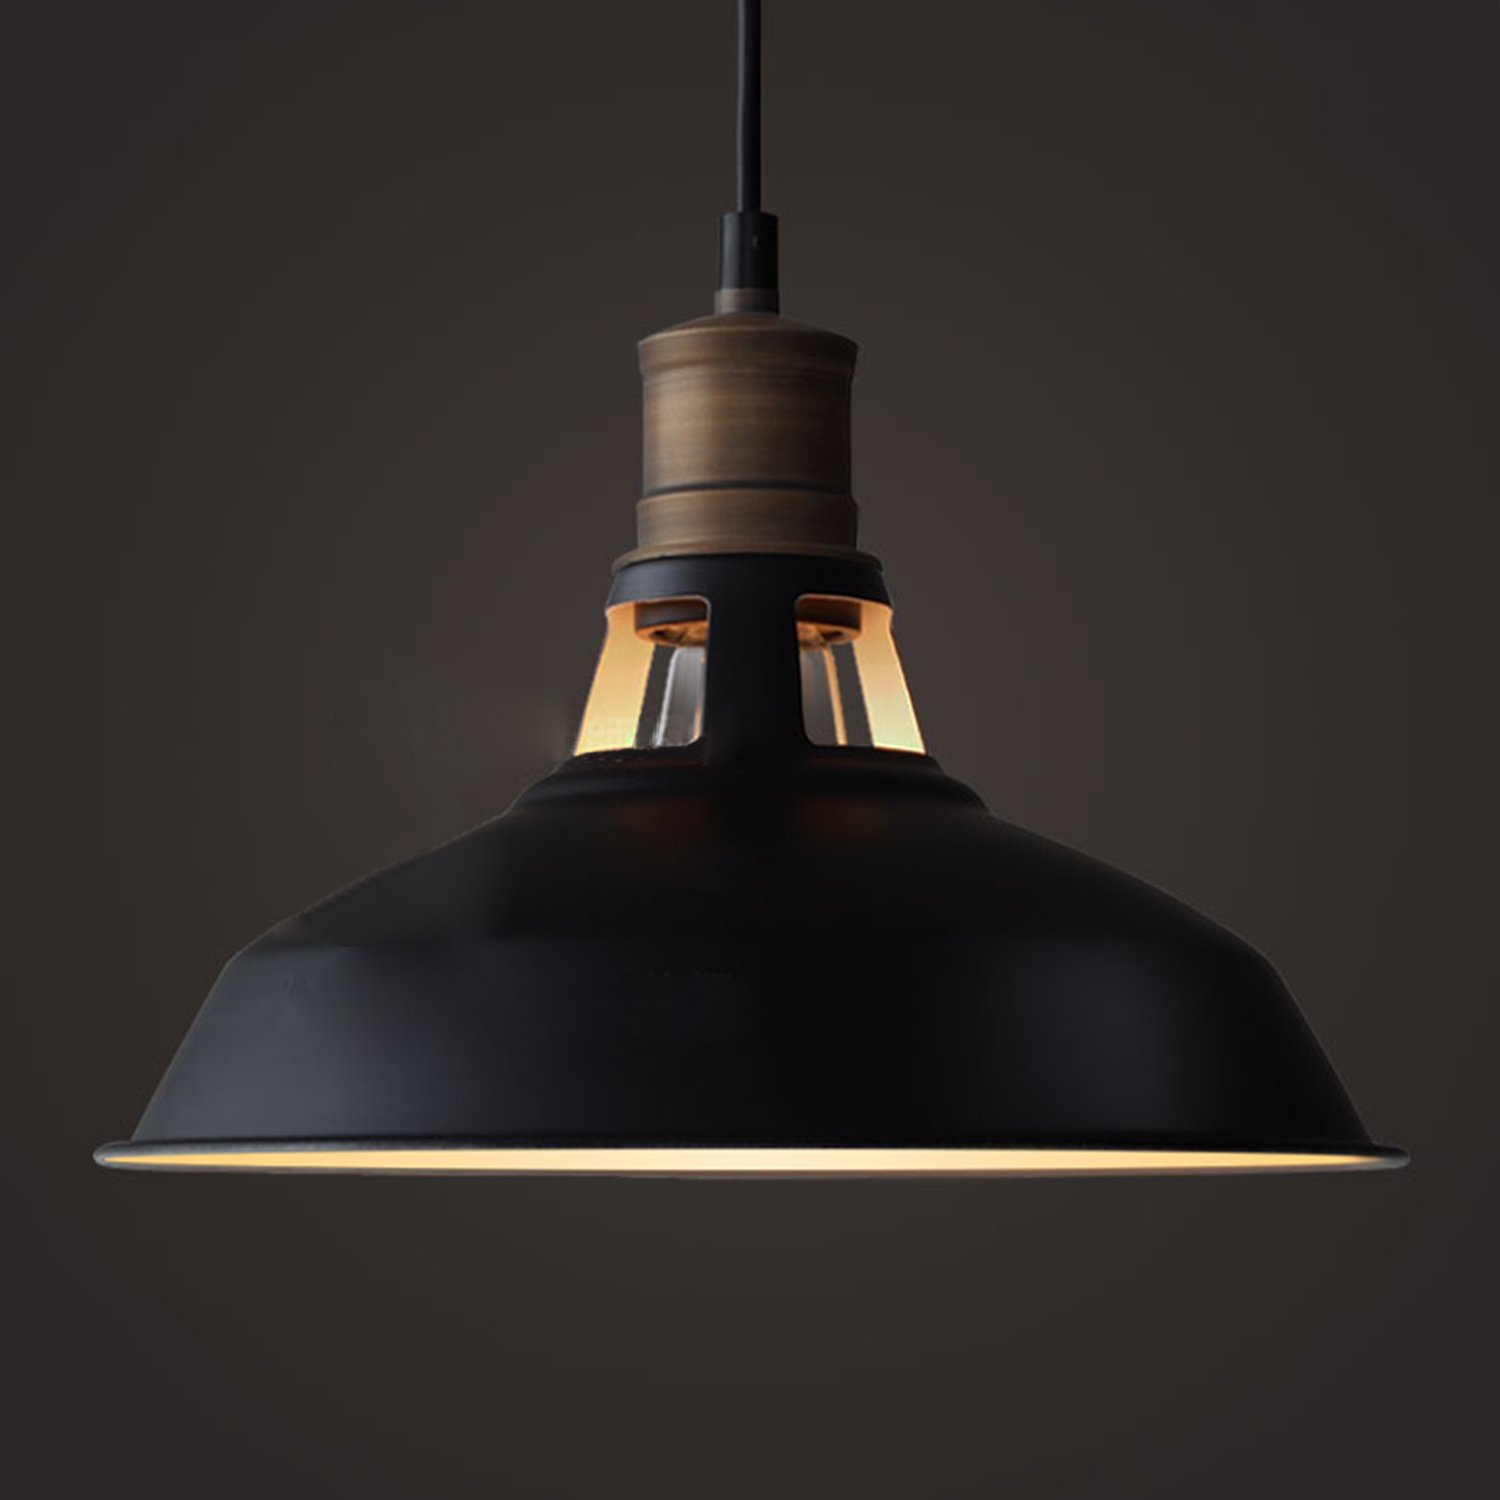 YOBO Lighting Antique Industrial Barn Hanging Pendant Light with Metal Dome Shade Matte Black - - Amazon.com & YOBO Lighting Antique Industrial Barn Hanging Pendant Light with ... azcodes.com